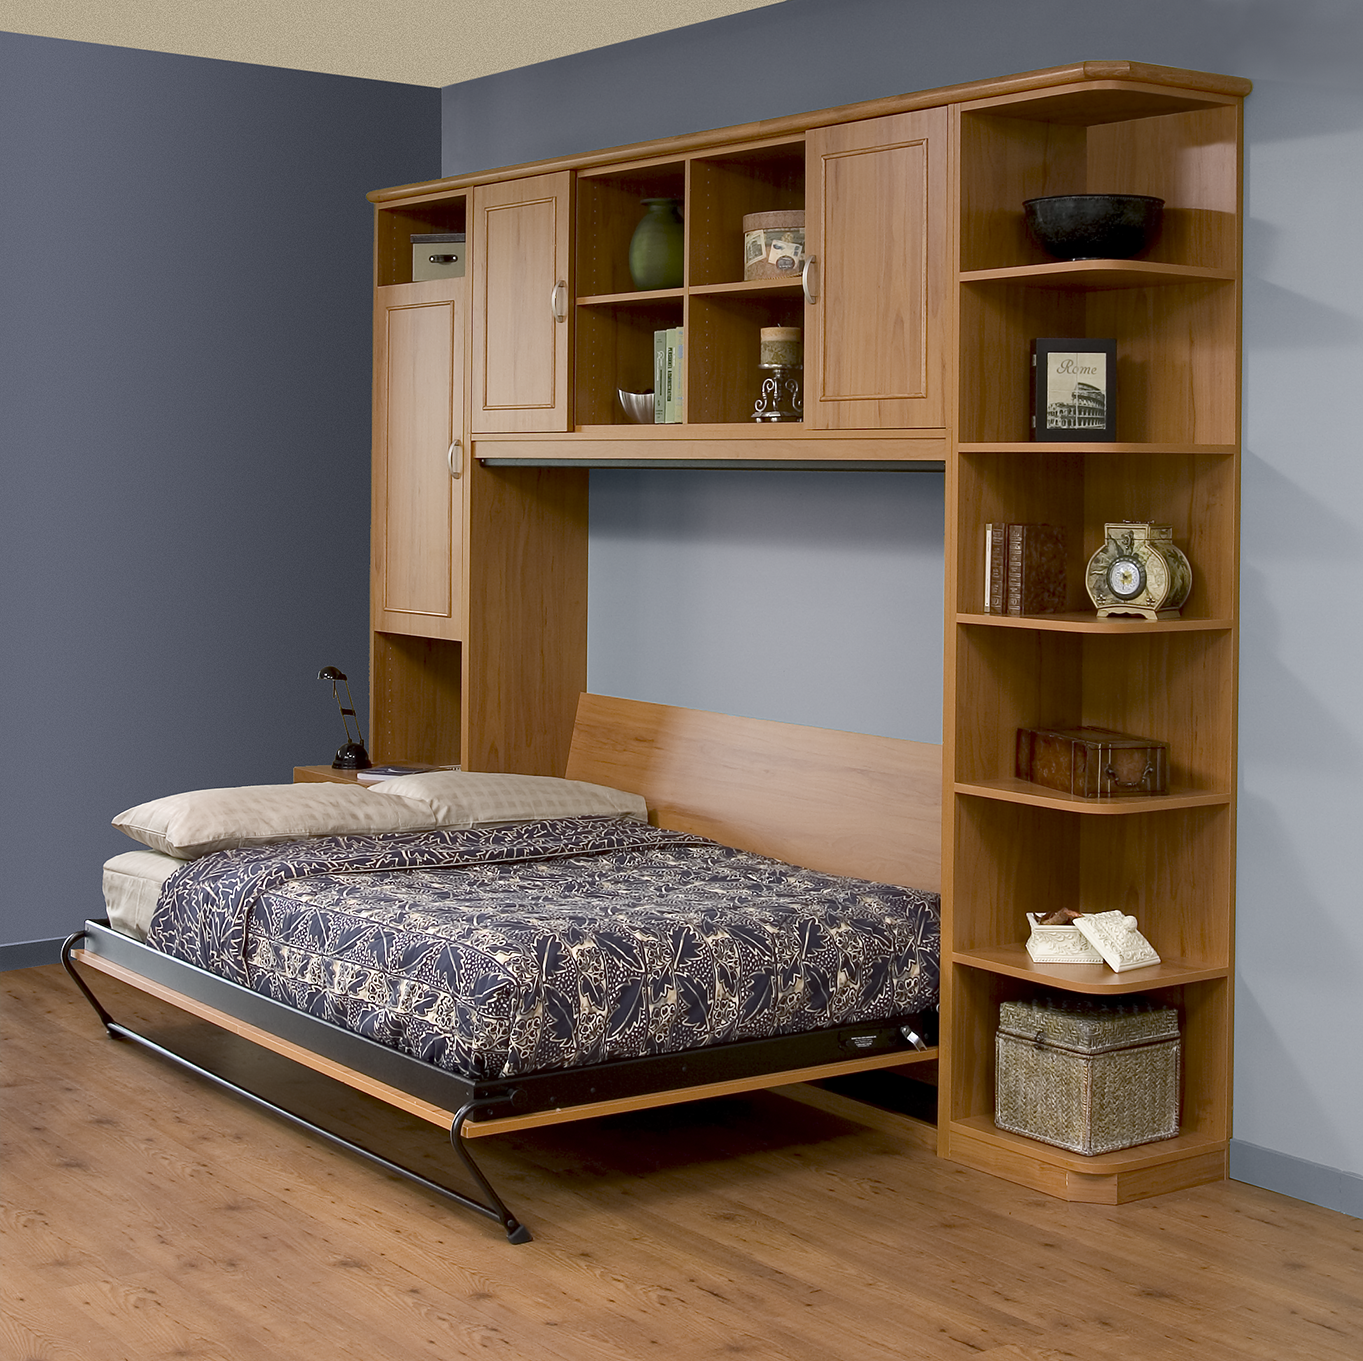 Images For Murphy Beds : Side tilt murphy beds